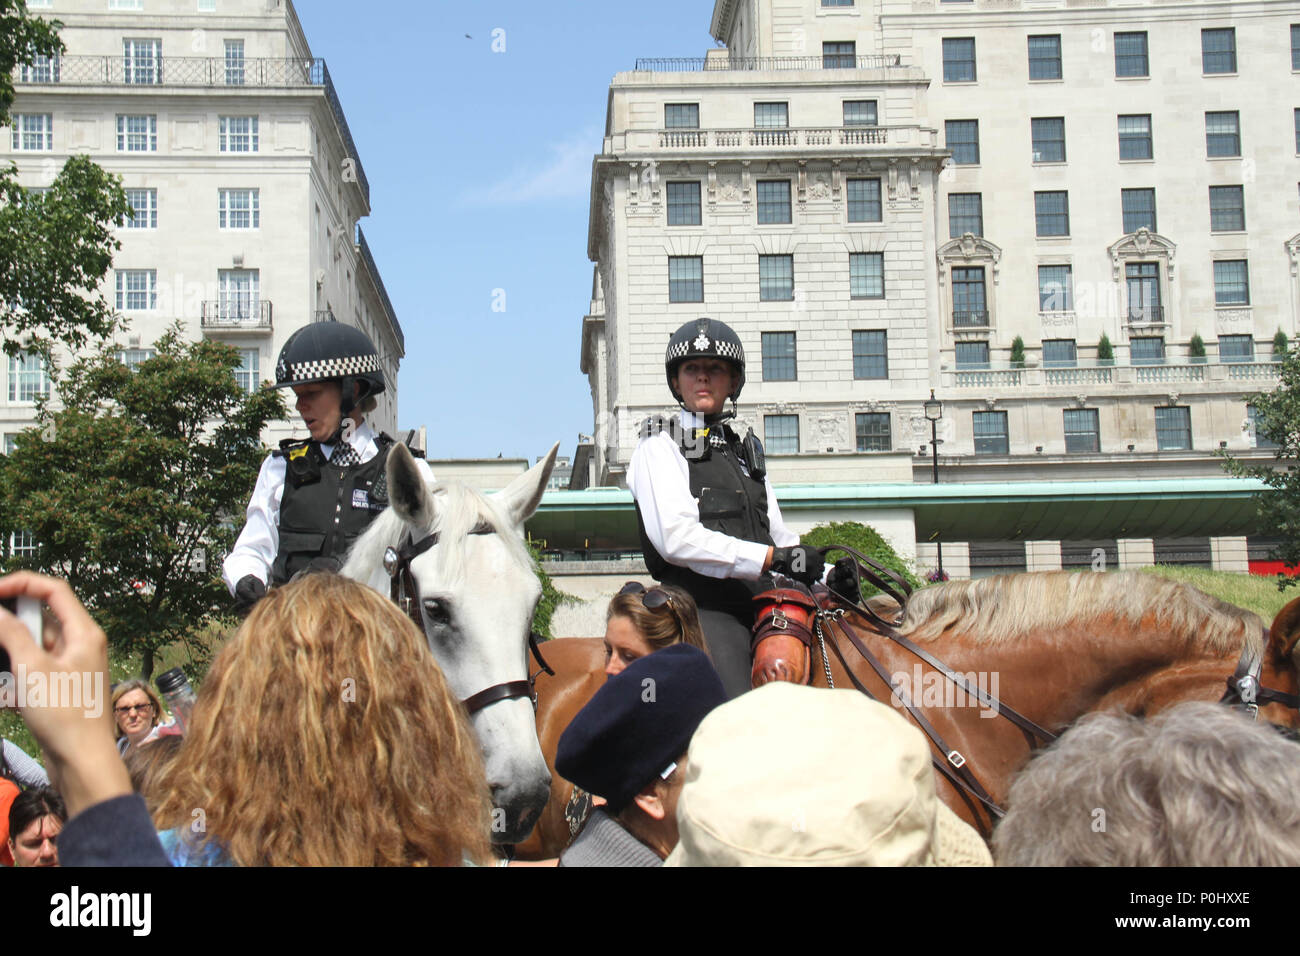 London, UK 9 June 2018: Two Police officers direct Londonners and tourist from Green STrete Station ahead of the Trooping of Colour ceremony on 9 June 2018.  Over 1400 parading soldiers, 200 horses and 400 musicians come together each June in a great display of military precision, horsemanship and fanfare to mark The Queen's official birthday. Credit: David Mbiyu/Alamy - Stock Image